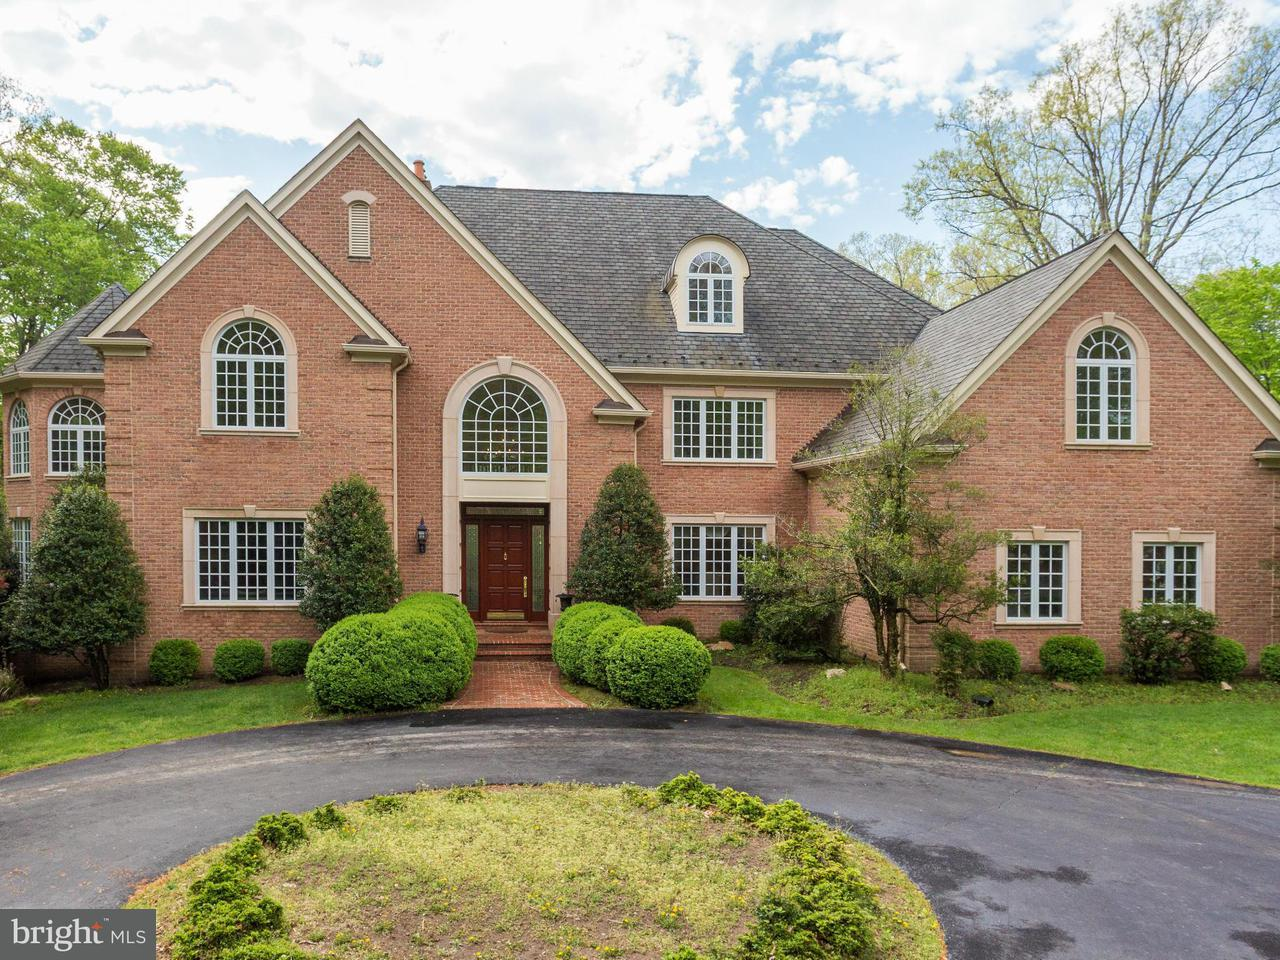 Single Family Home for Sale at 12994 WYCKLAND Drive 12994 WYCKLAND Drive Clifton, Virginia 20124 United States